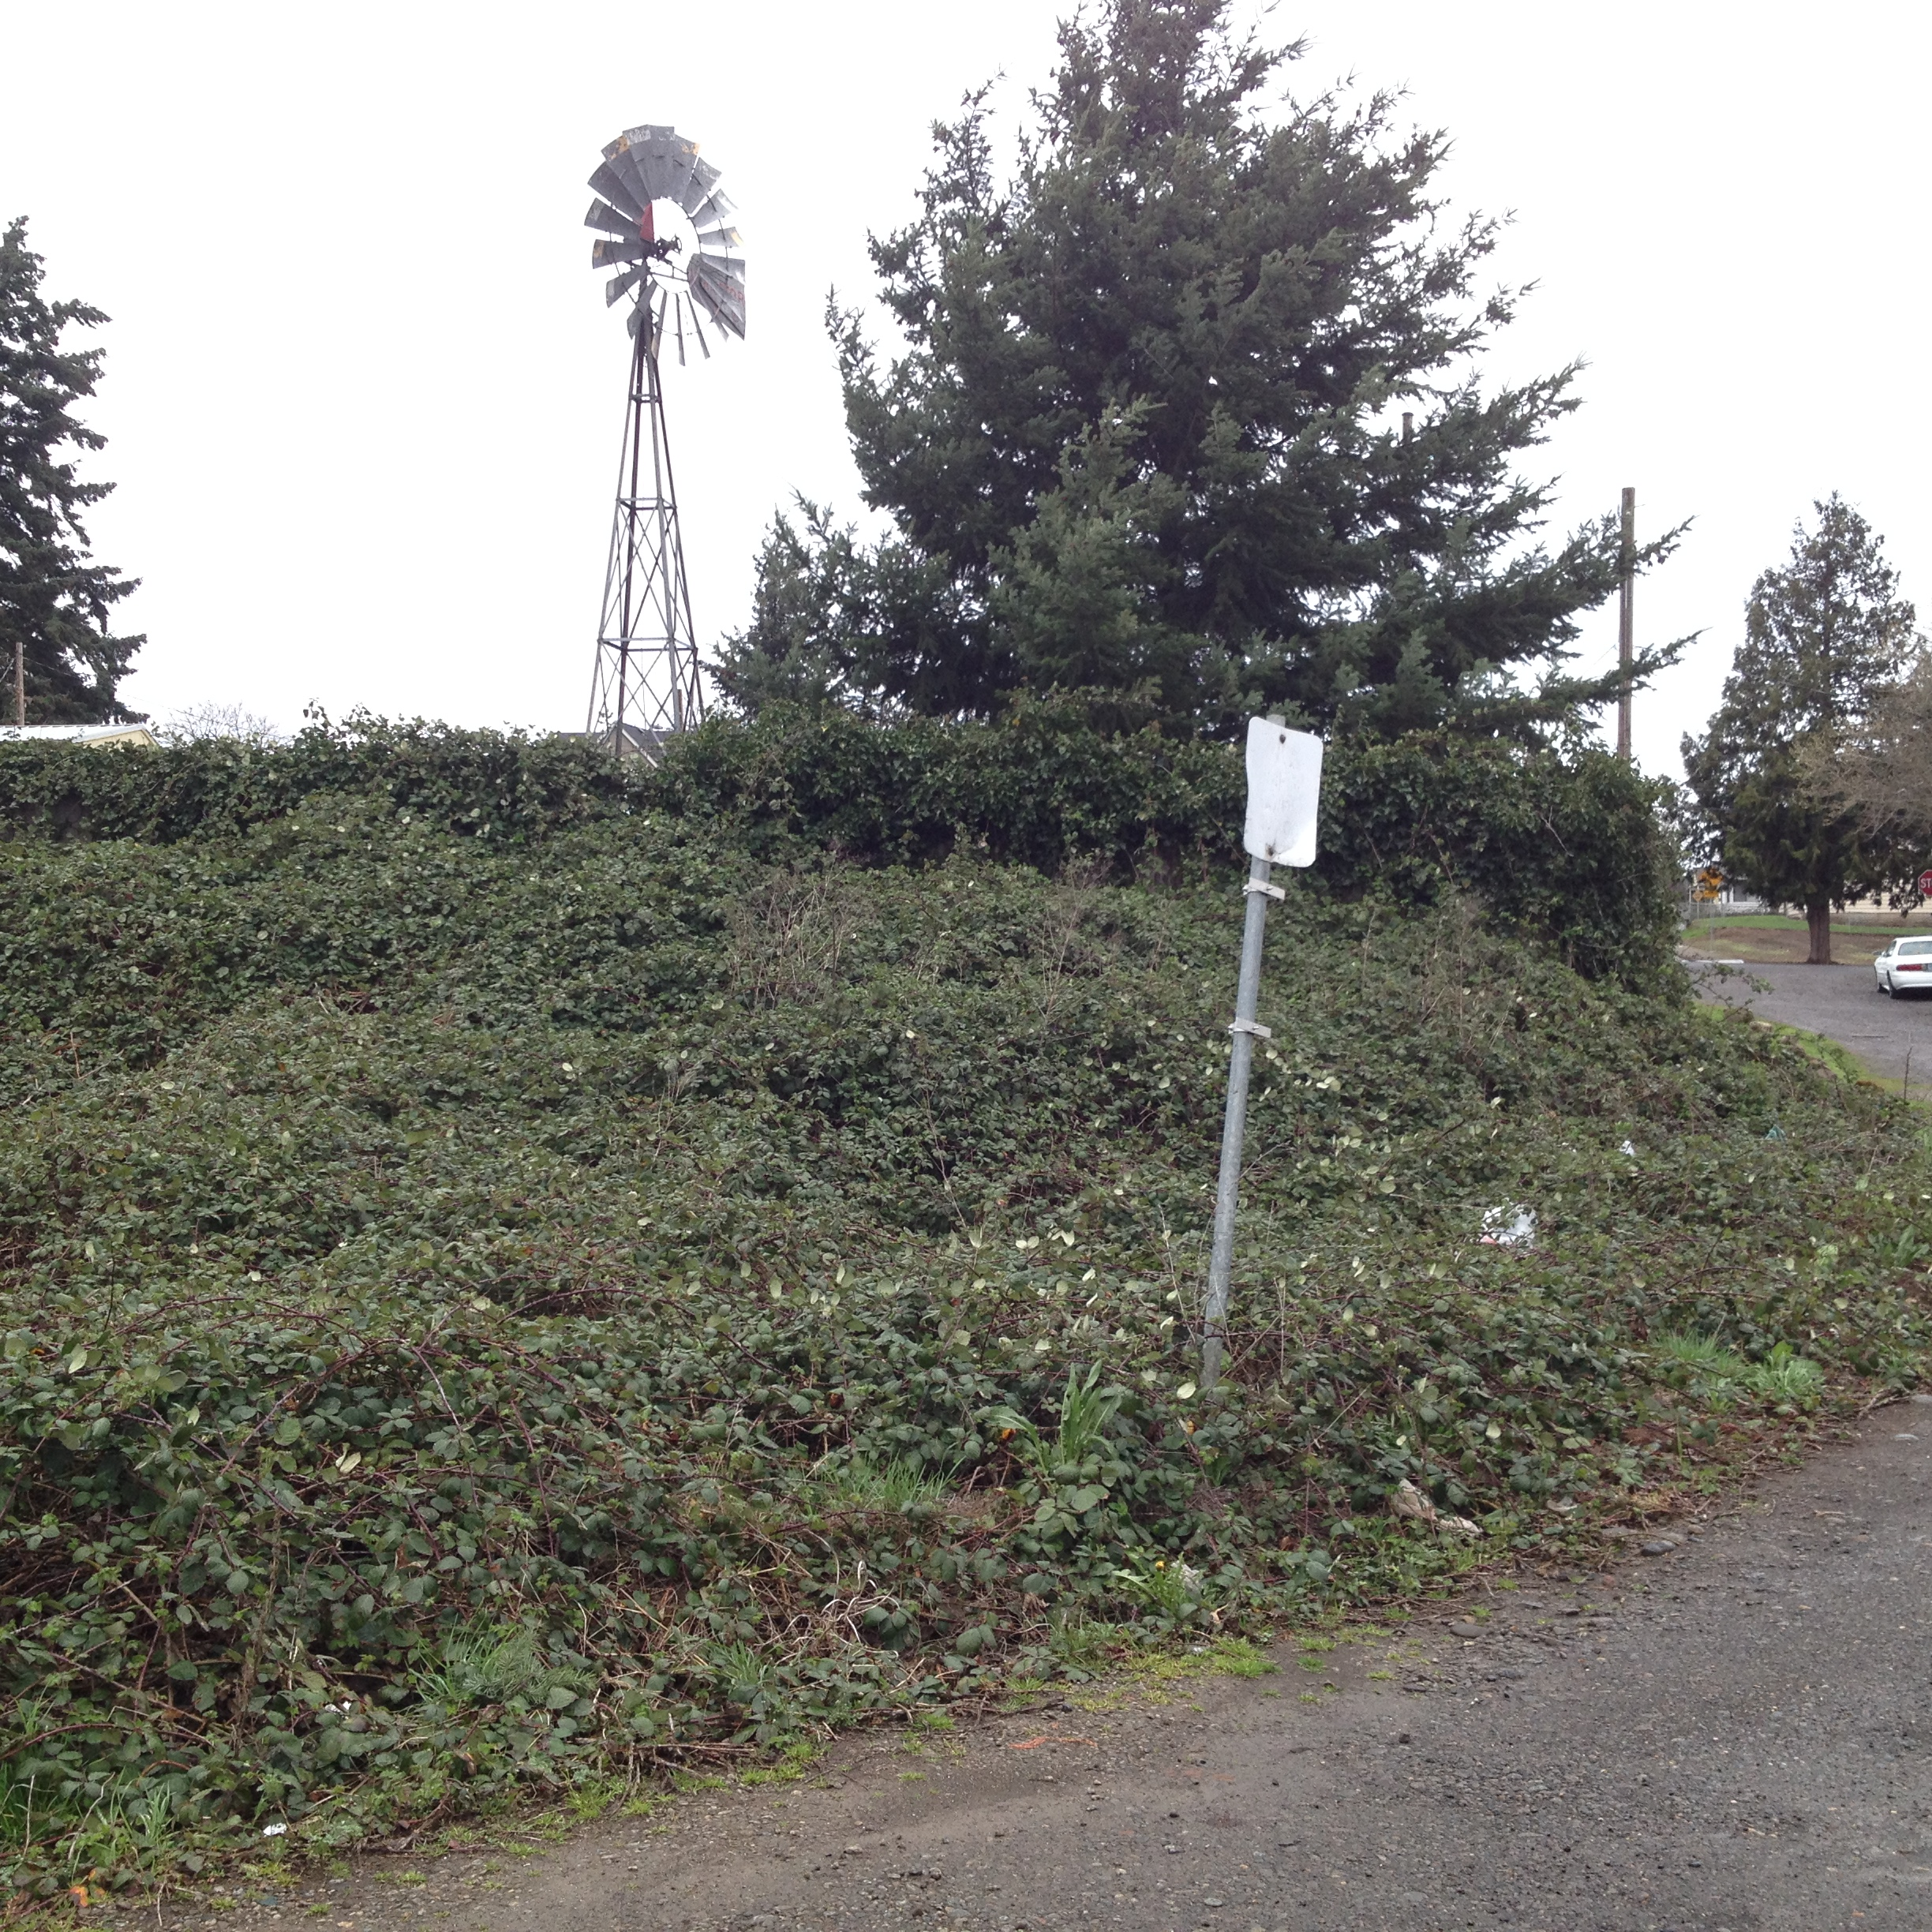 This 1/2 acre site was very overgrown with blackberry bramble and garbage from years of illegal dumping.